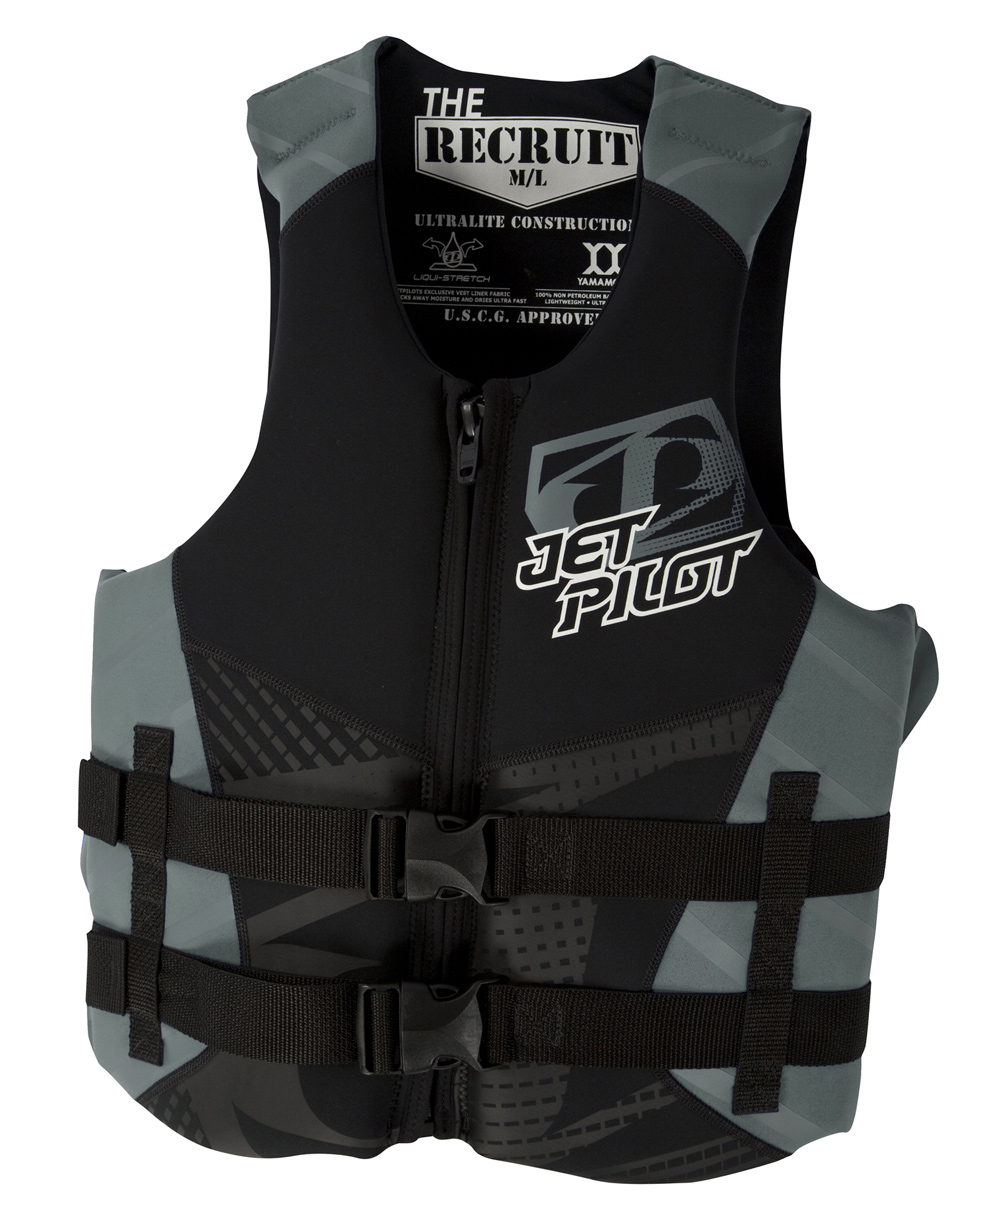 Wake The 2-buckle closure and classic front zip design prove that you don't need any new tricks to make an awesome product. You're getting all that and more with the Jet Pilot Recruit Neo CGA Wakeboard Vest. It comes with a U.S. Coast Gurad approved rating which means that you will be safe without worry. Key Features of the Jet Pilot Recruit Neo CGA Wakeboard Vest: 2-Buckle closure Classic front zip design Durable Mesh drainage gussets Screen printed branding Hidden Webbing U.S. Coast guard approved - $34.95